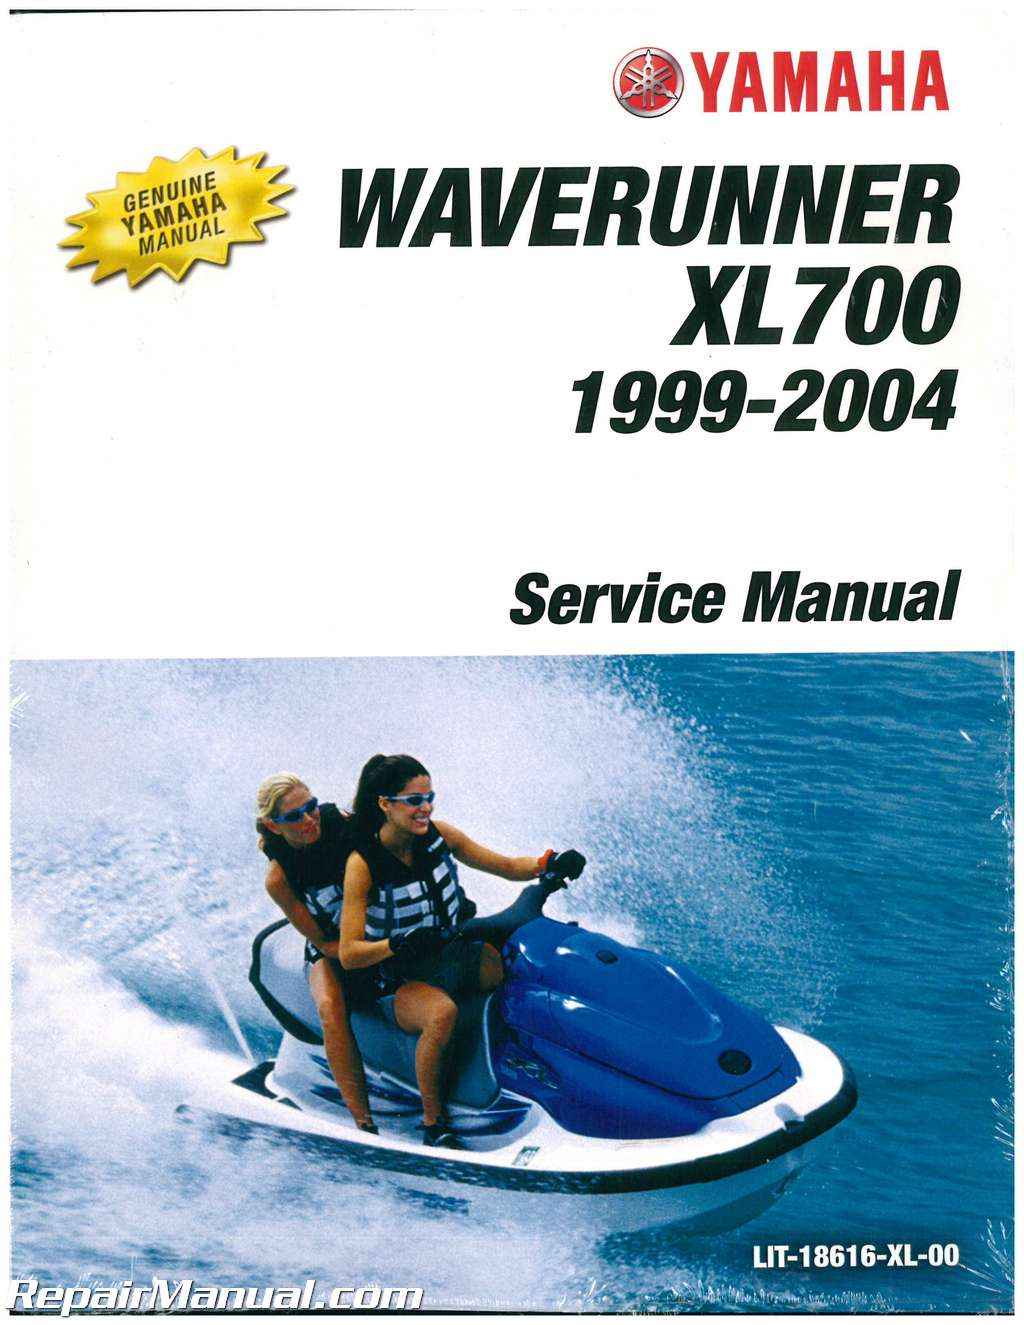 1999 2004 Yamaha XL700 XL760 Waverunner Service Manual_001 pdf] 2002 yamaha waverunner xl700 service manual wave runner (28  at gsmportal.co